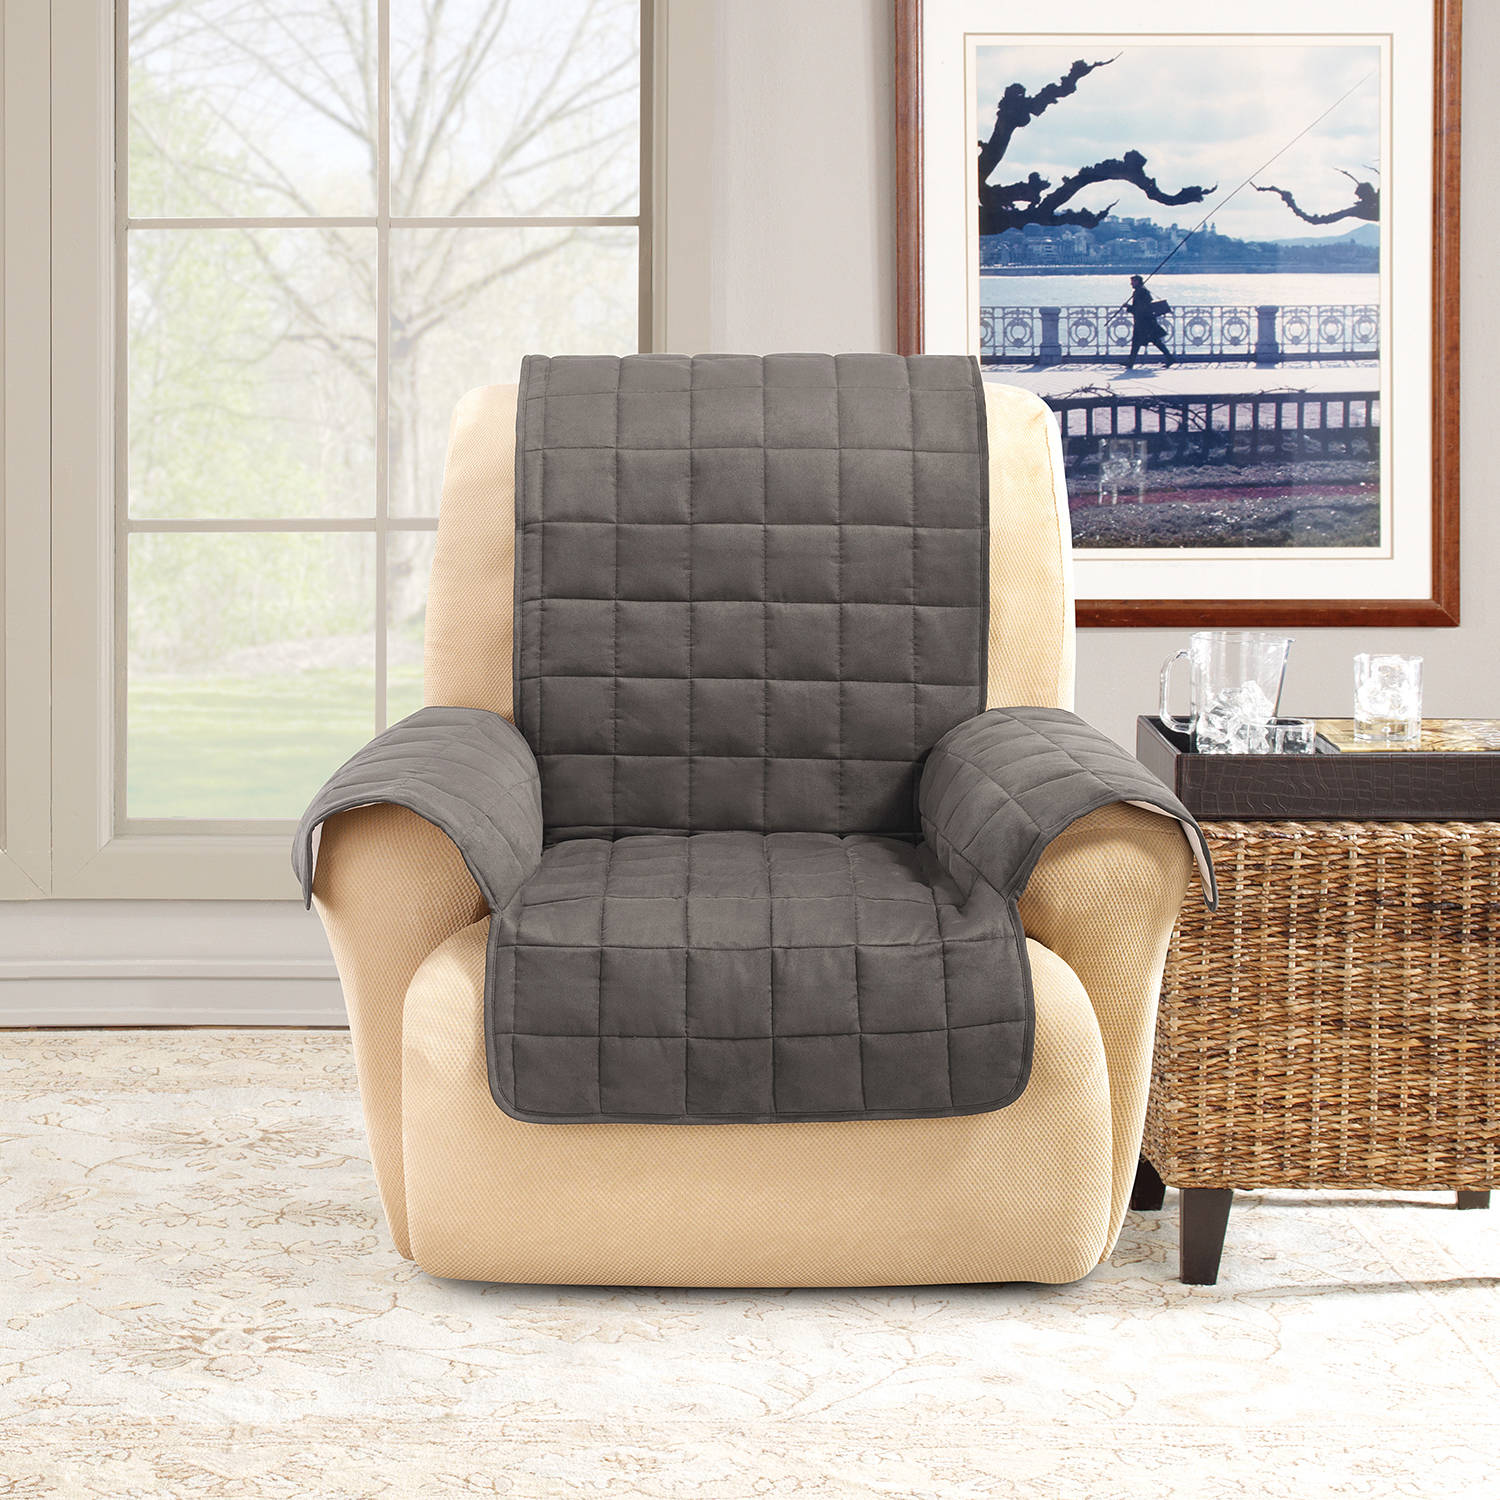 Charmant Sure Fit Ultimate Waterproof Quilted Pet Recliner Cover   Walmart.com